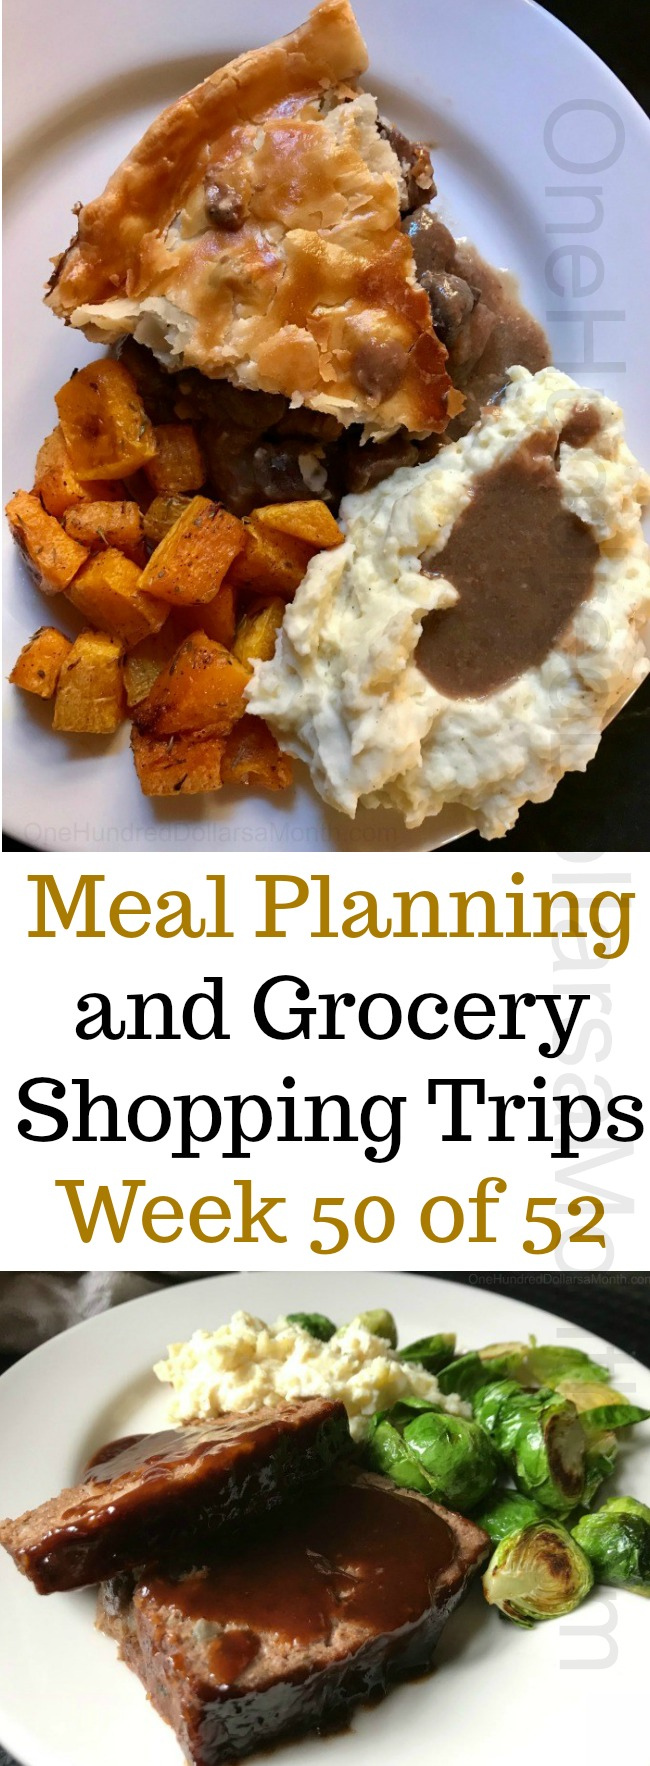 Meal Planning and Grocery Shopping Trips – Week 50 of 52